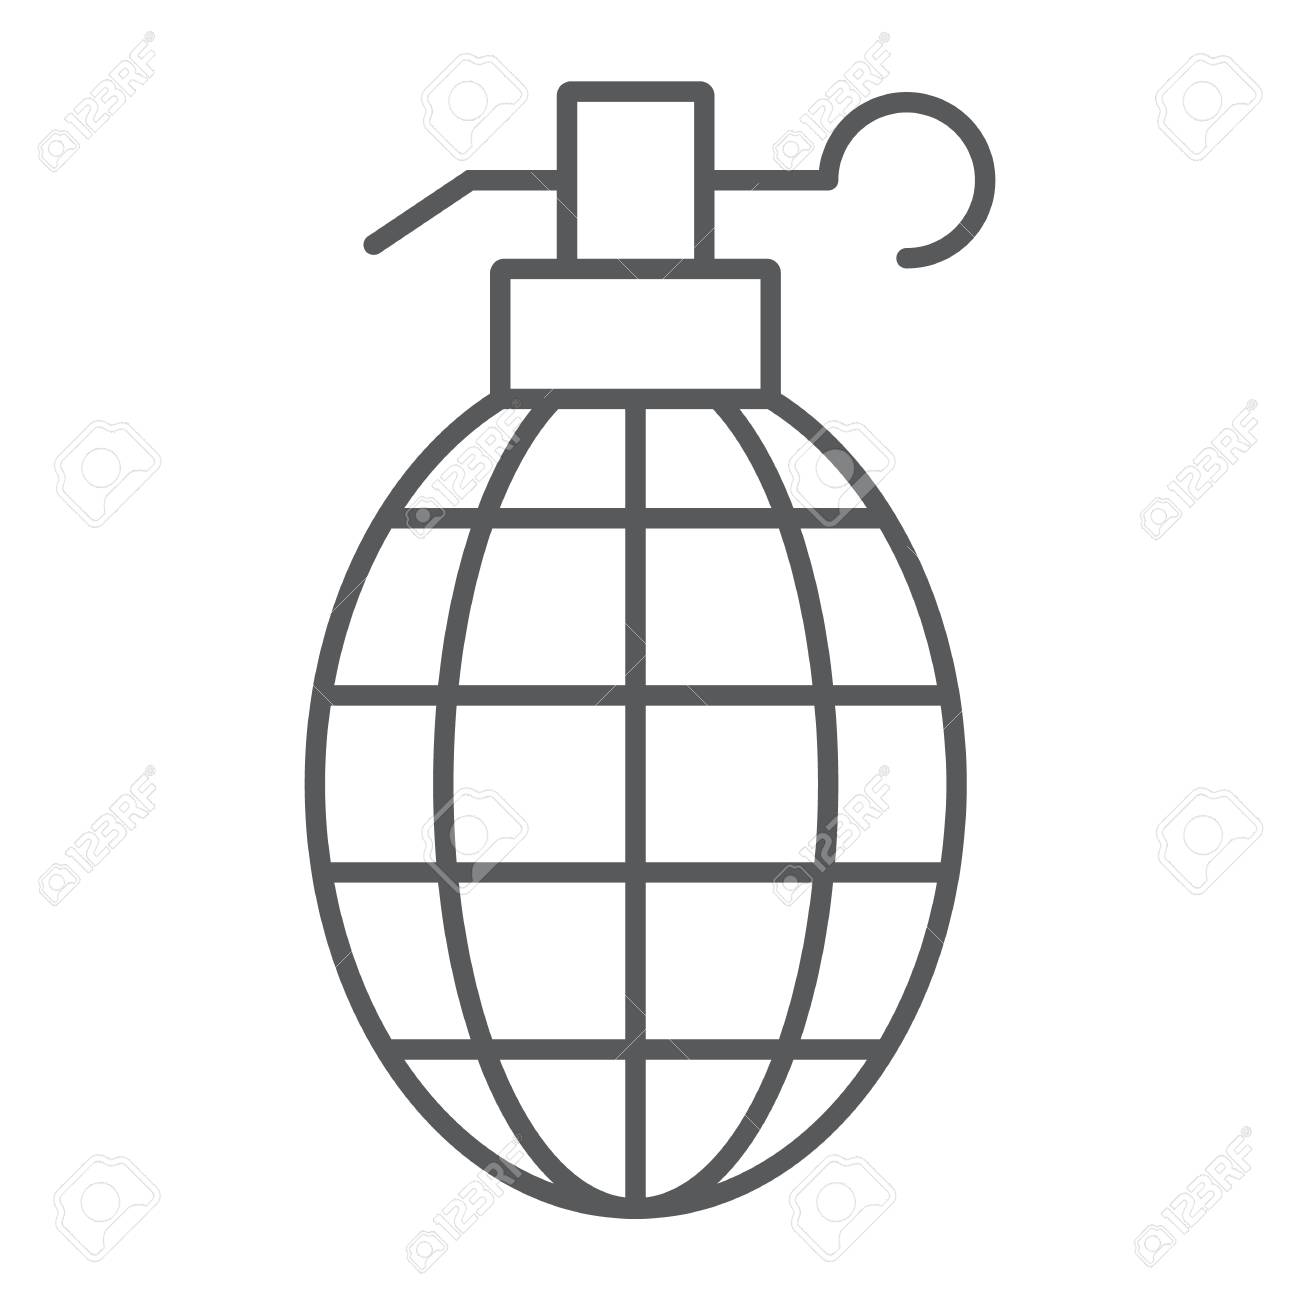 grenade thin line icon, weapon and army, bomb sign, vector graphics,..  royalty free cliparts, vectors, and stock illustration. image 115419565.  123rf